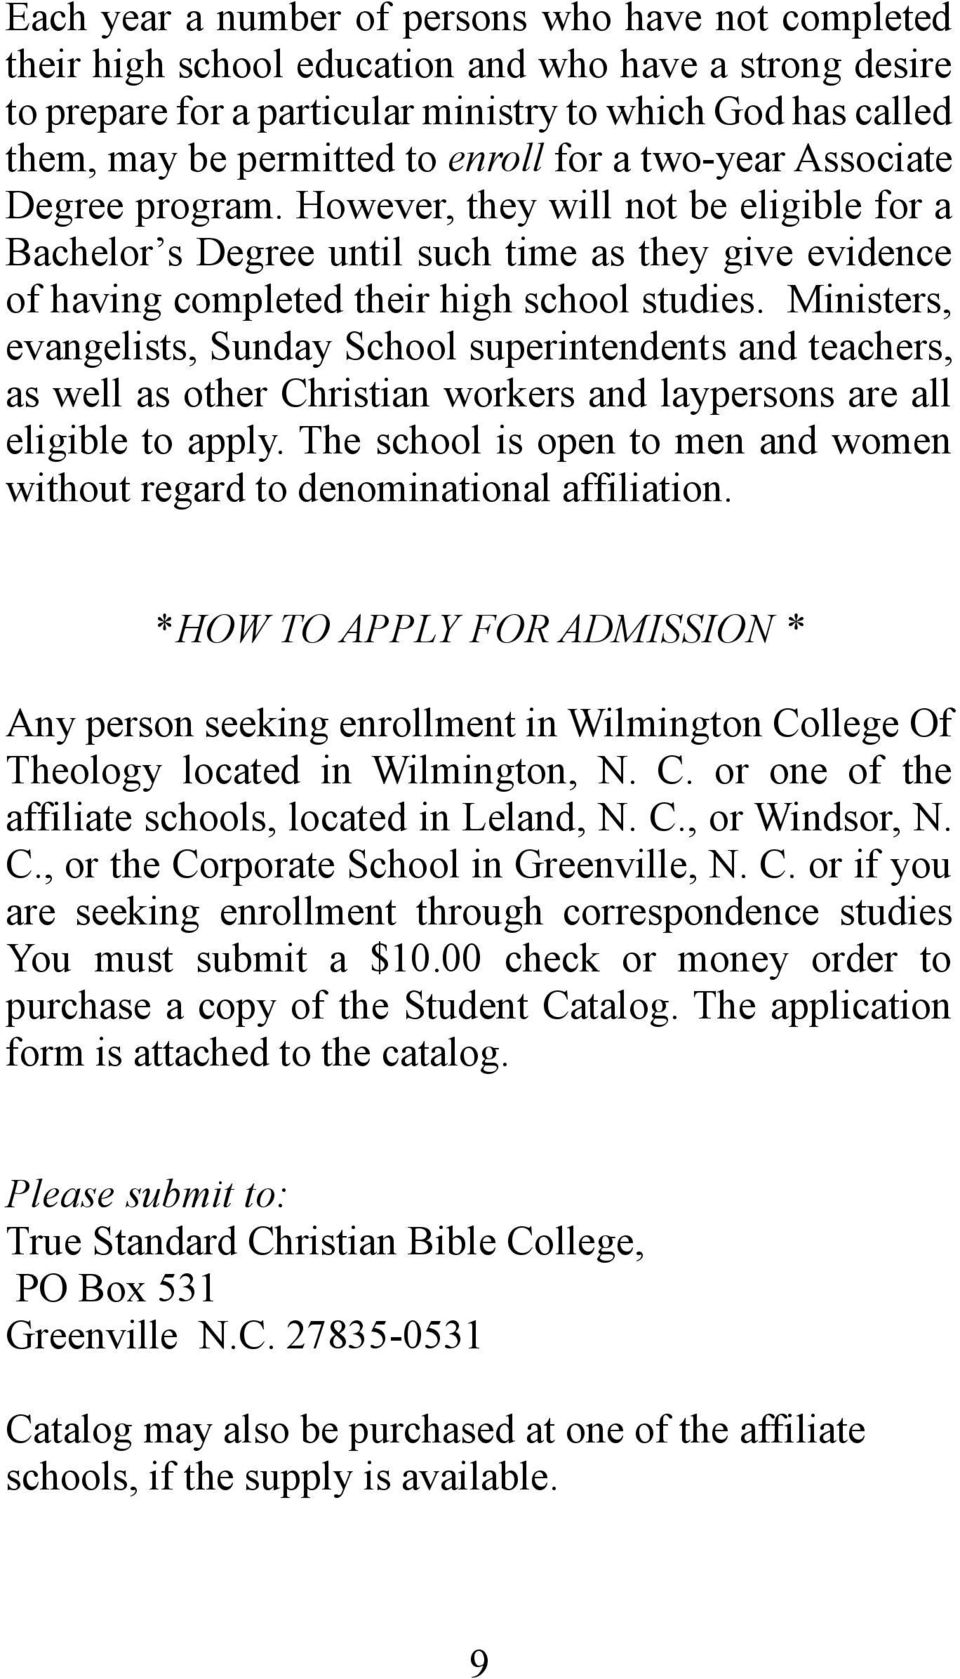 Ministers, evangelists, Sunday School superintendents and teachers, as well as other Christian workers and laypersons are all eligible to apply.